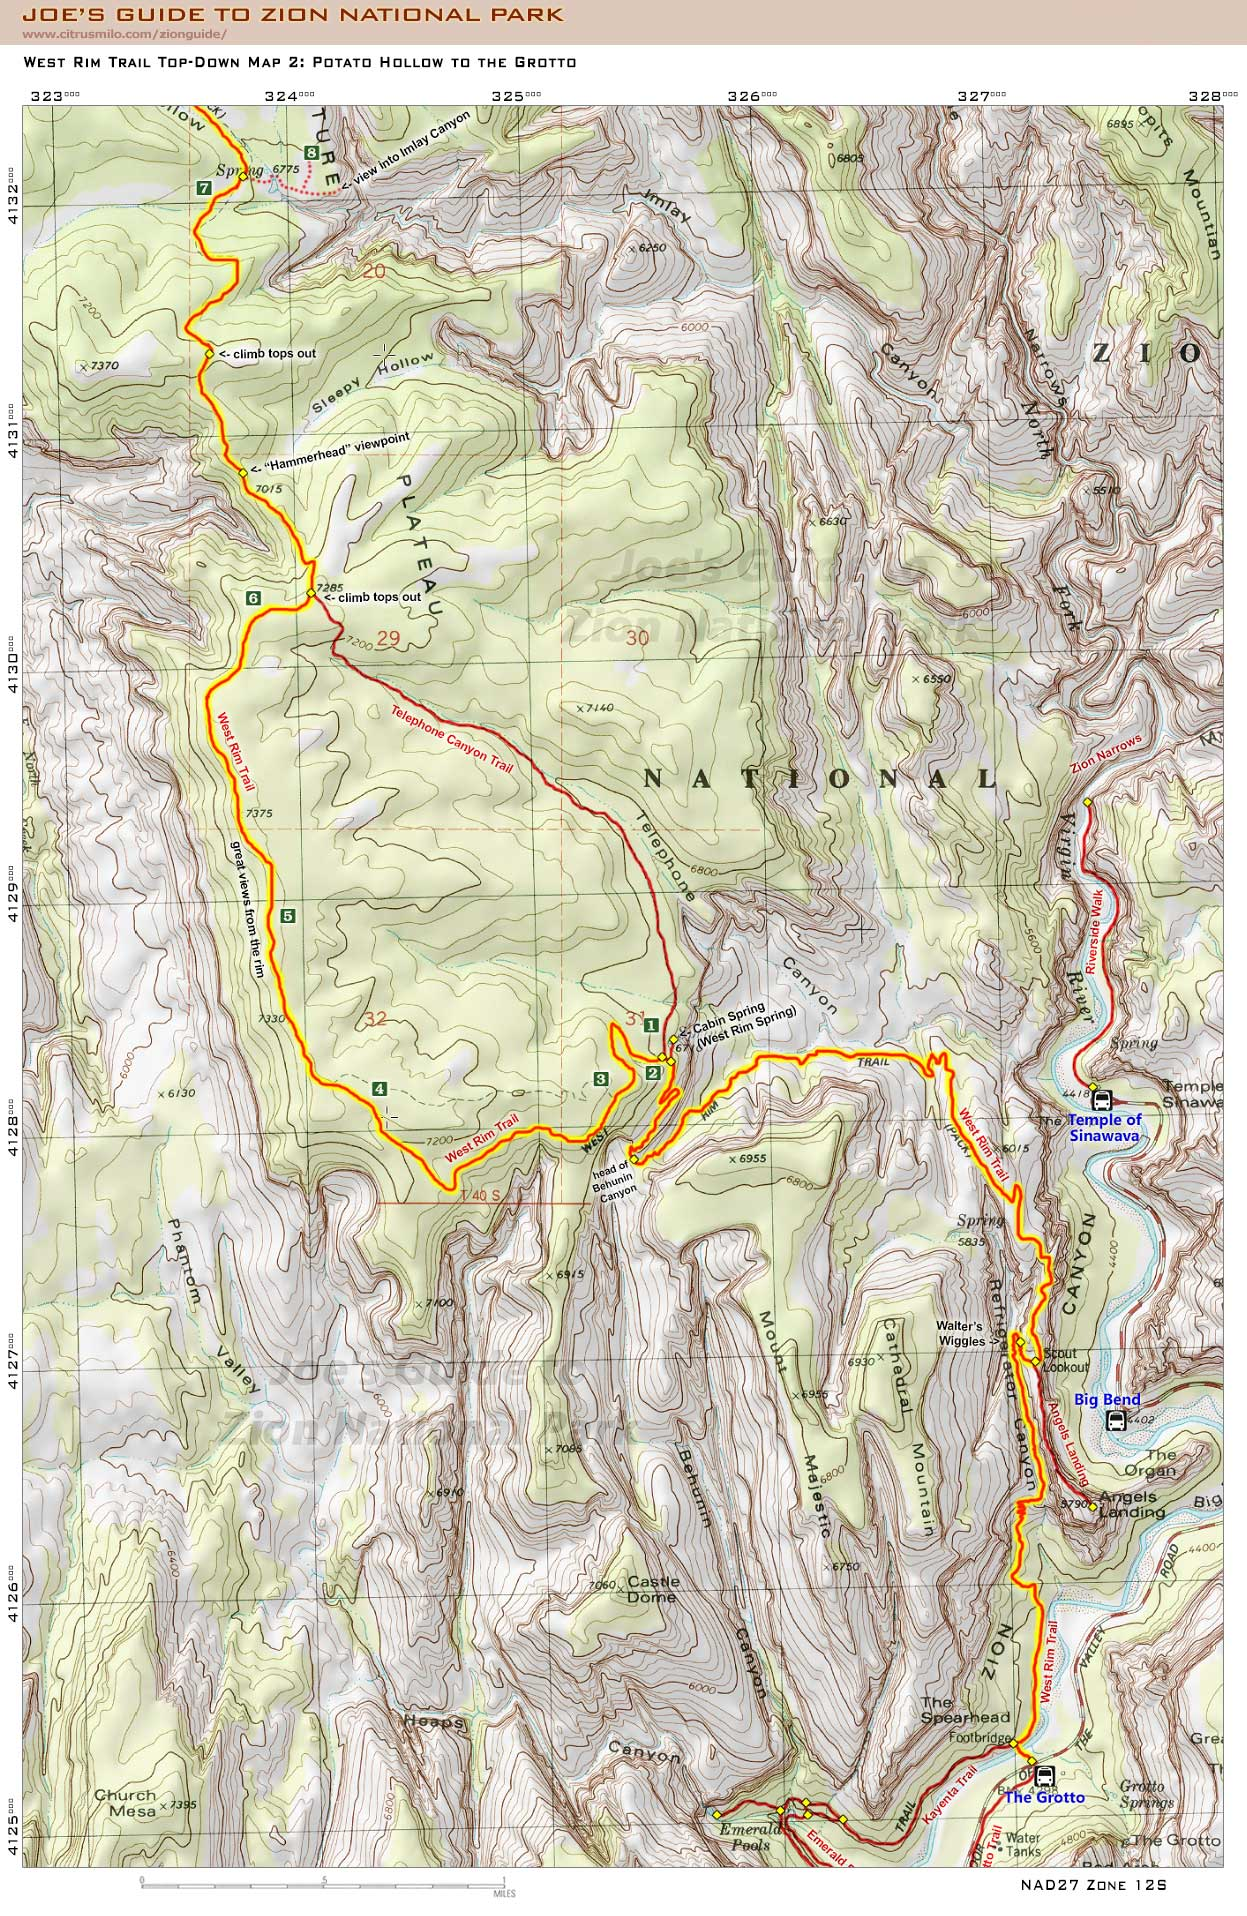 Joe's Guide to Zion National Park - West Rim Trail Top-Down Map 2 on san isabel national forest trail map, cuyamaca rancho state park trail map, white river national forest trail map, beacon rock state park trail map, colorado national monument trail map, petrified forest trail map, big cypress national preserve trail map, black mountains trail map, fishlake national forest trail map, chickasaw national recreation area trail map, zion east rim trail map, kaibab national forest trail map, capitol reef trail map, glacier national park on us map, cuyahoga valley national park trail map, yellowstone national park map, national hiking trails map, draper trail map, angels landing trail map, mt. zion utah map,